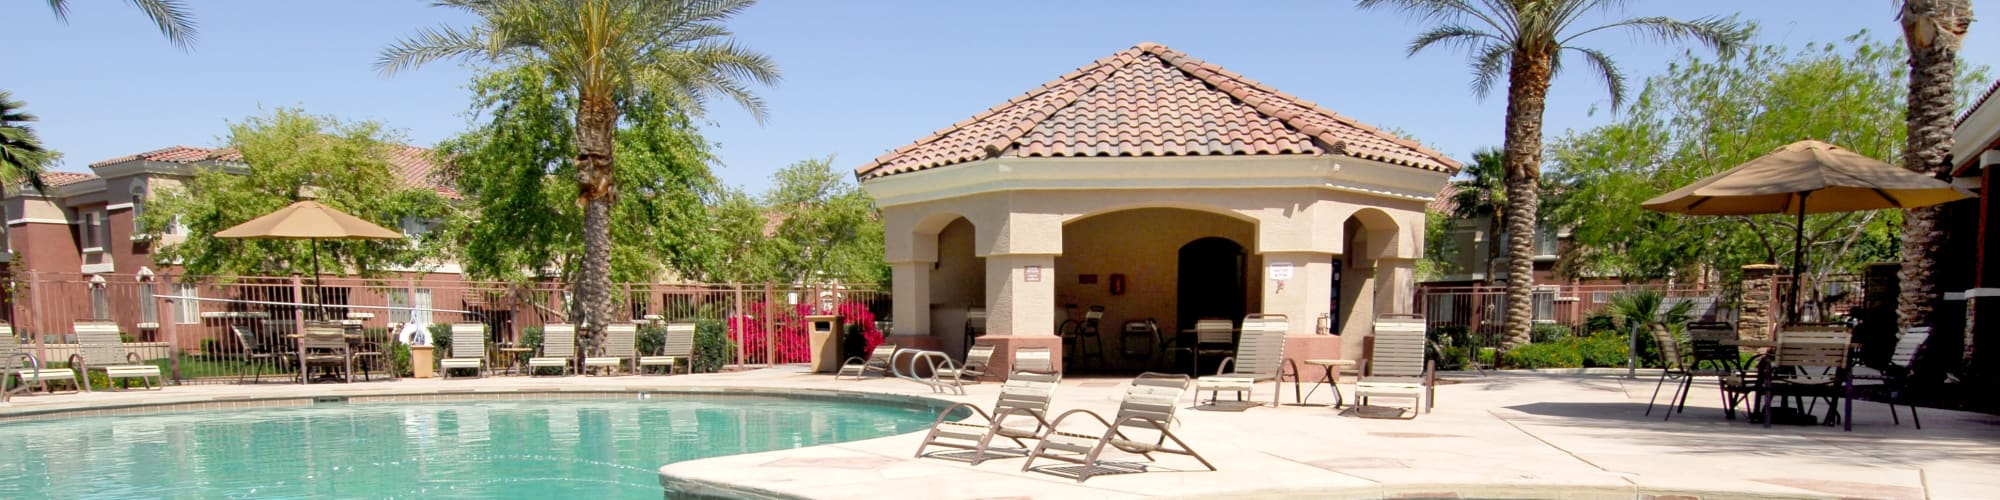 Amenities at Remington Ranch in Litchfield Park, Arizona